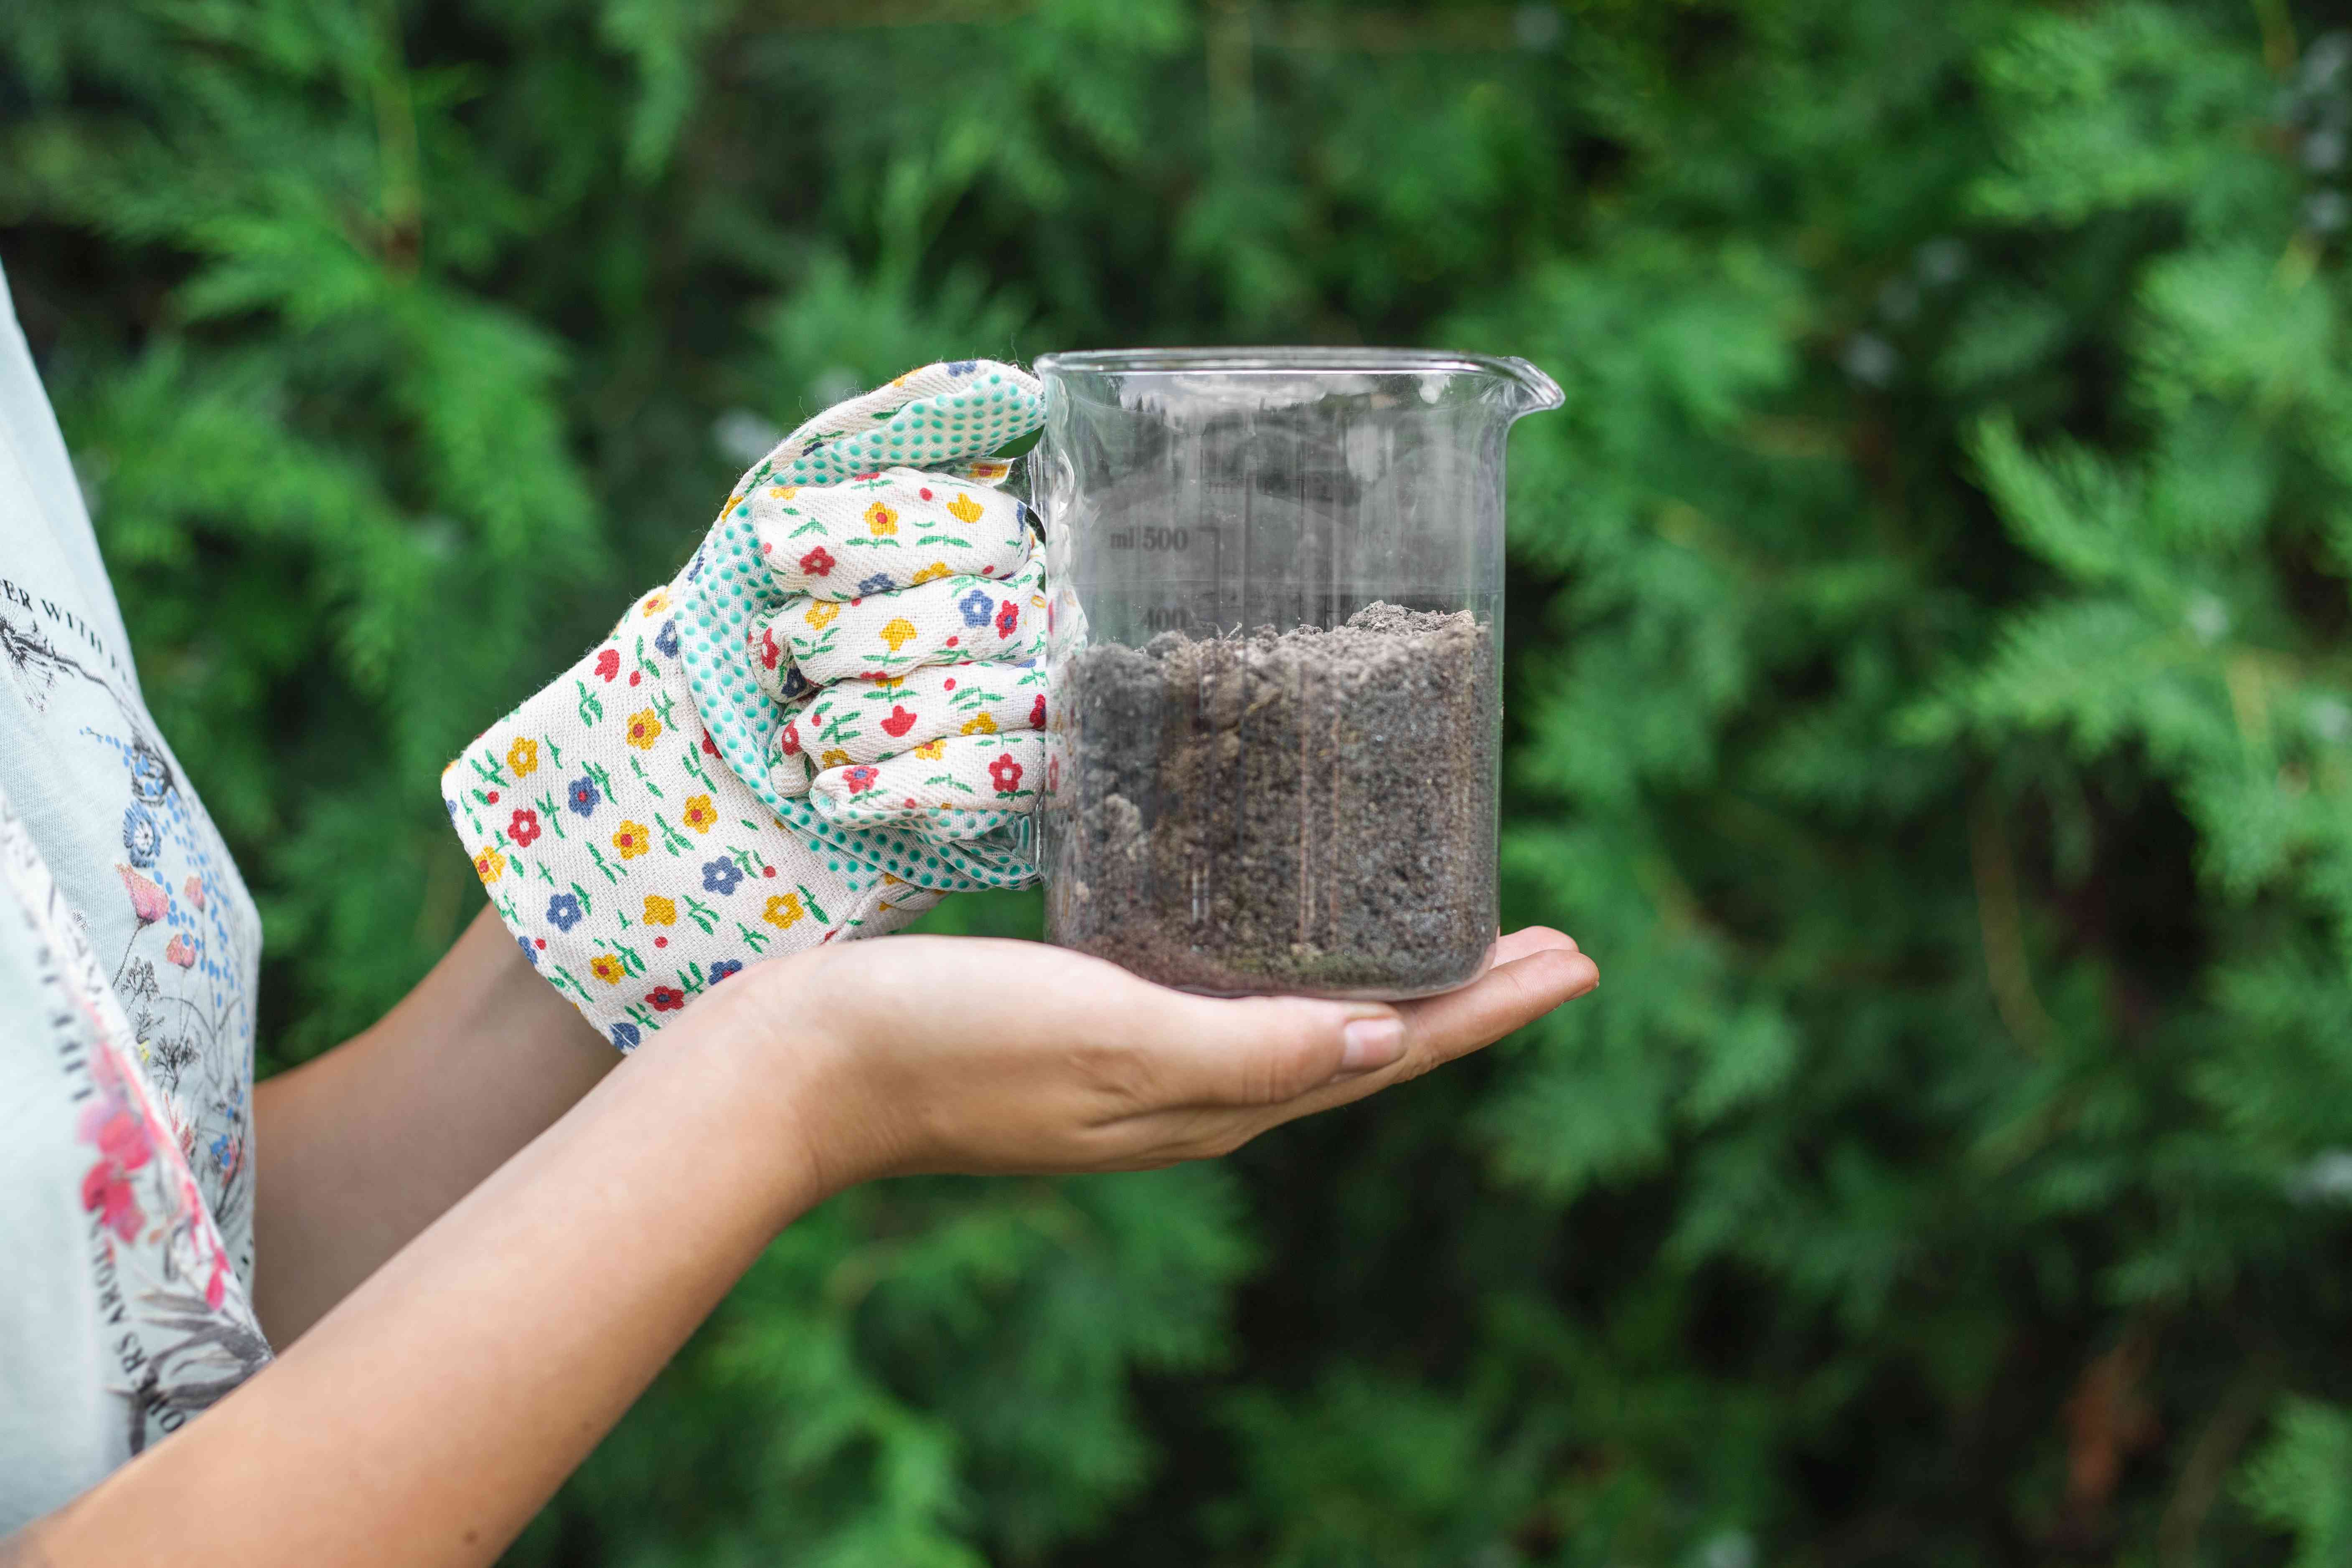 person wearing one gardening glove displays garden soil in glass cup reading for ph testing